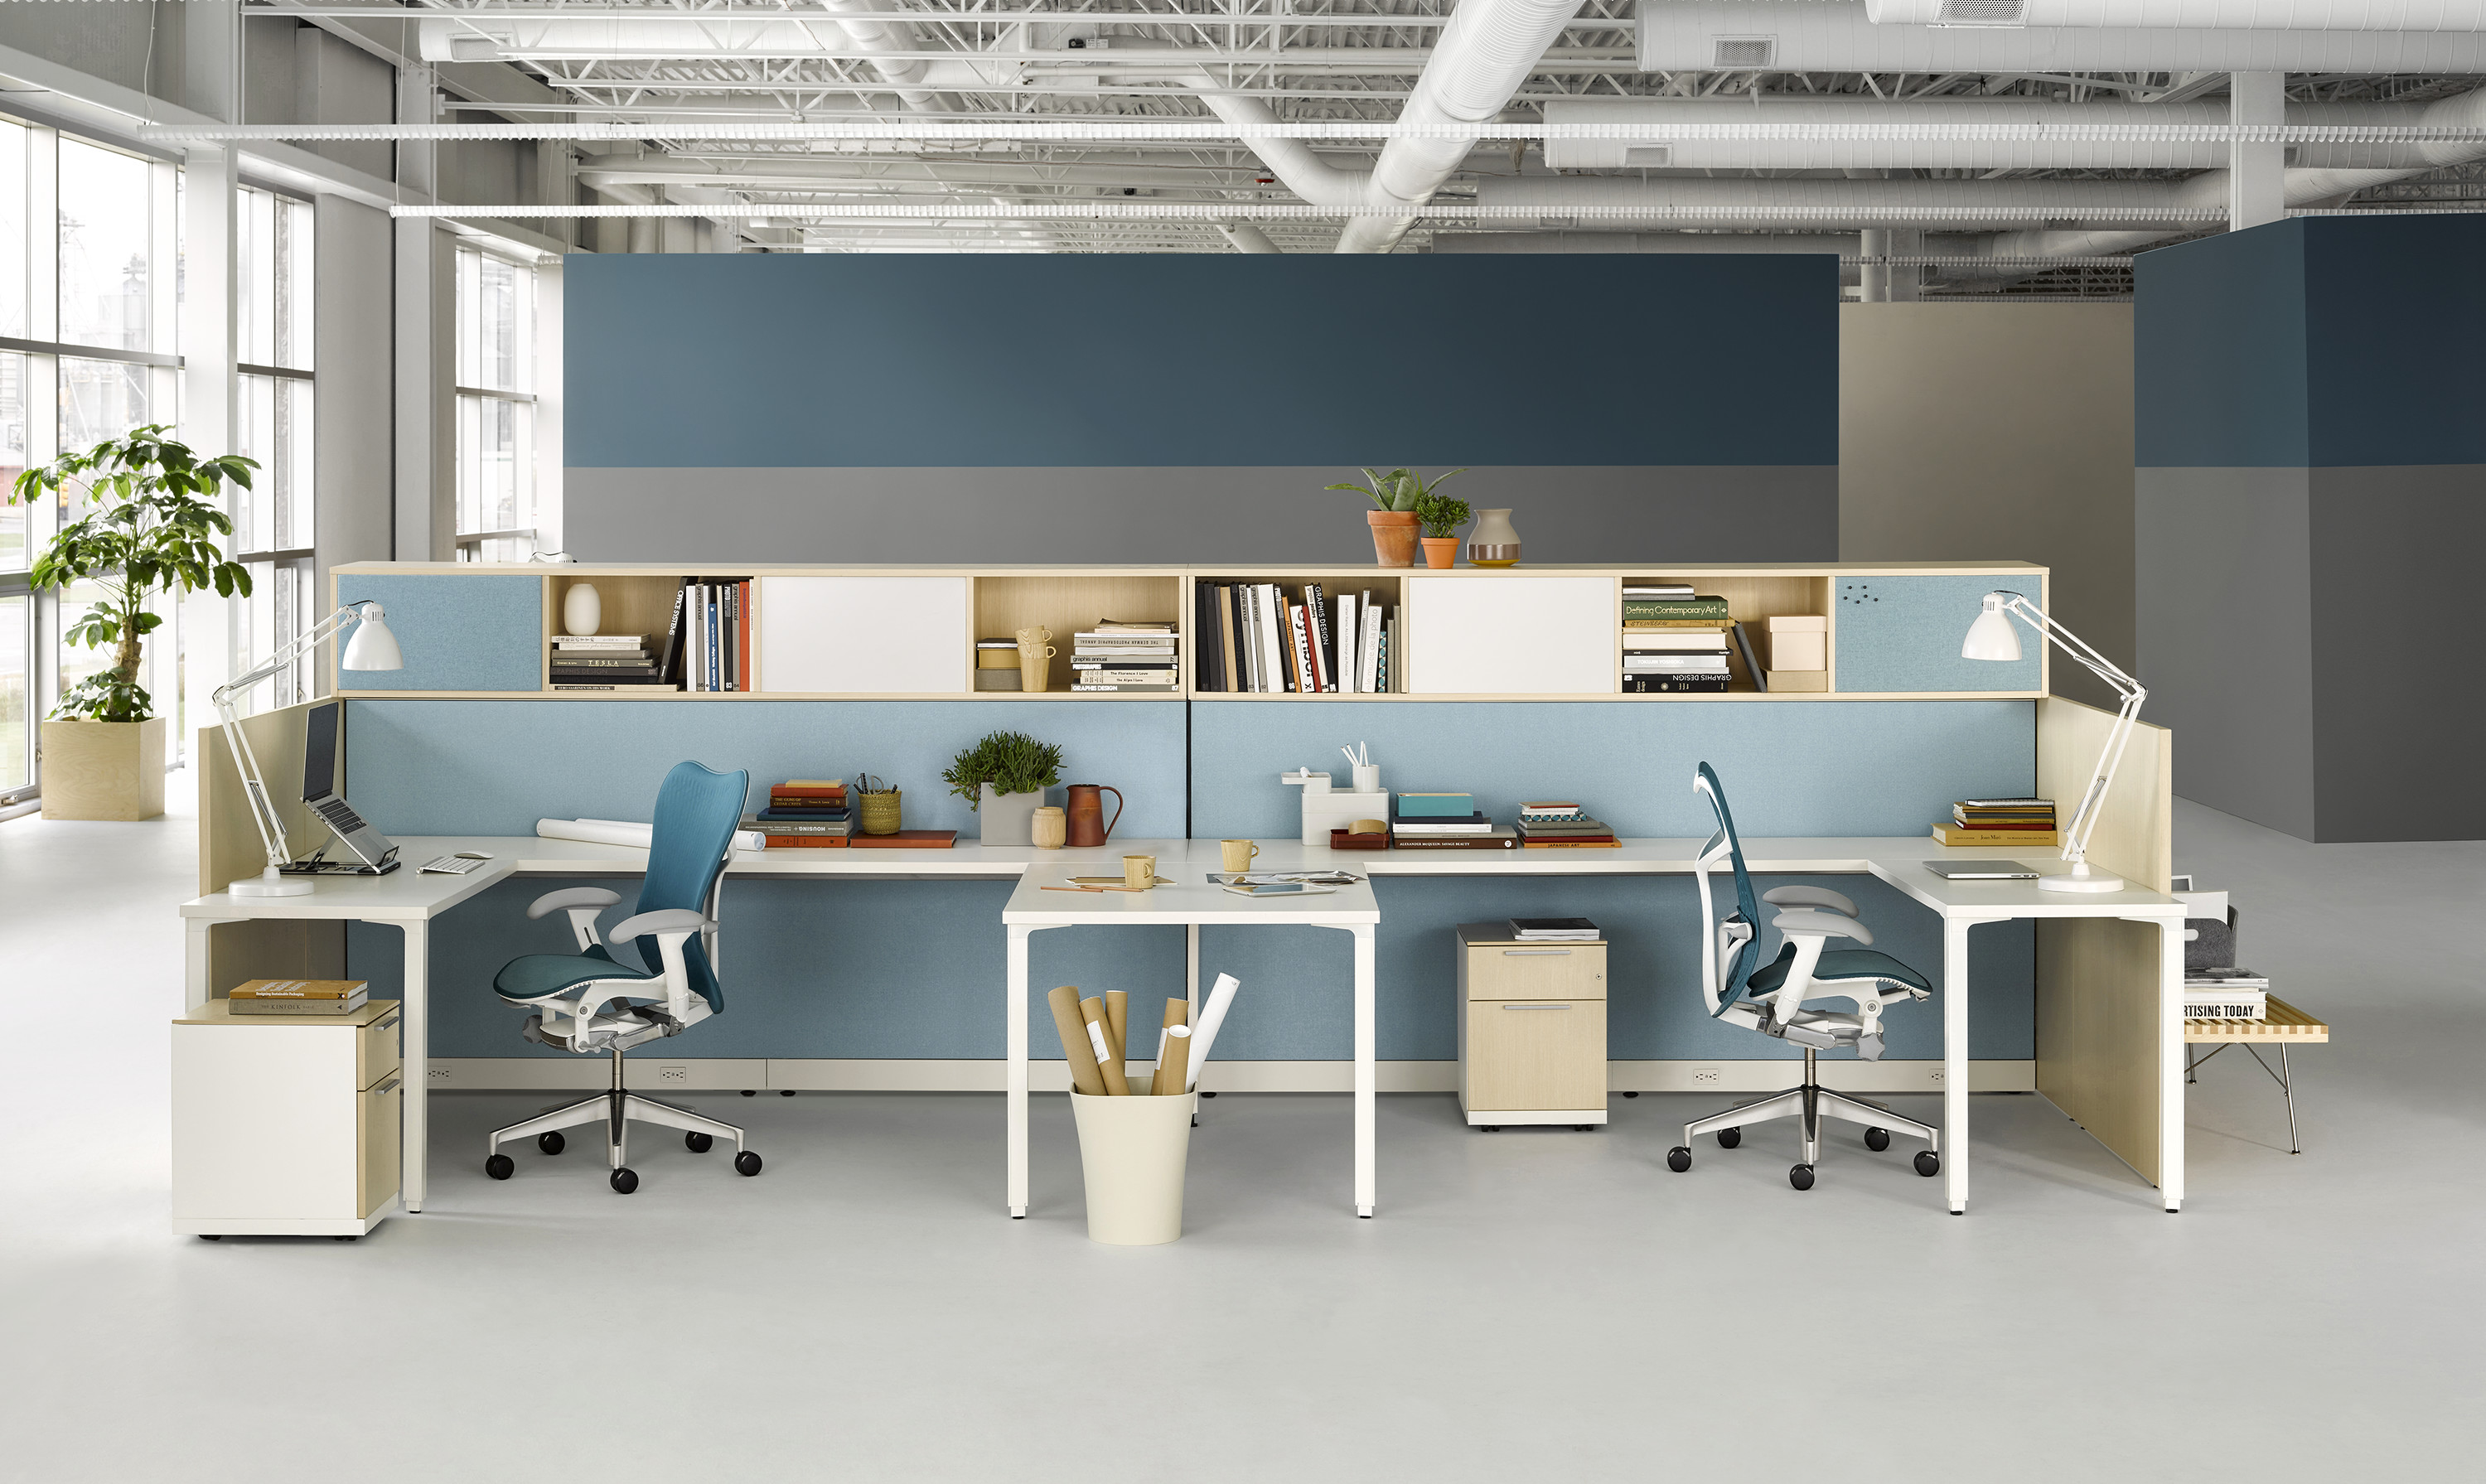 Office space design and planning where to start for Office space planning